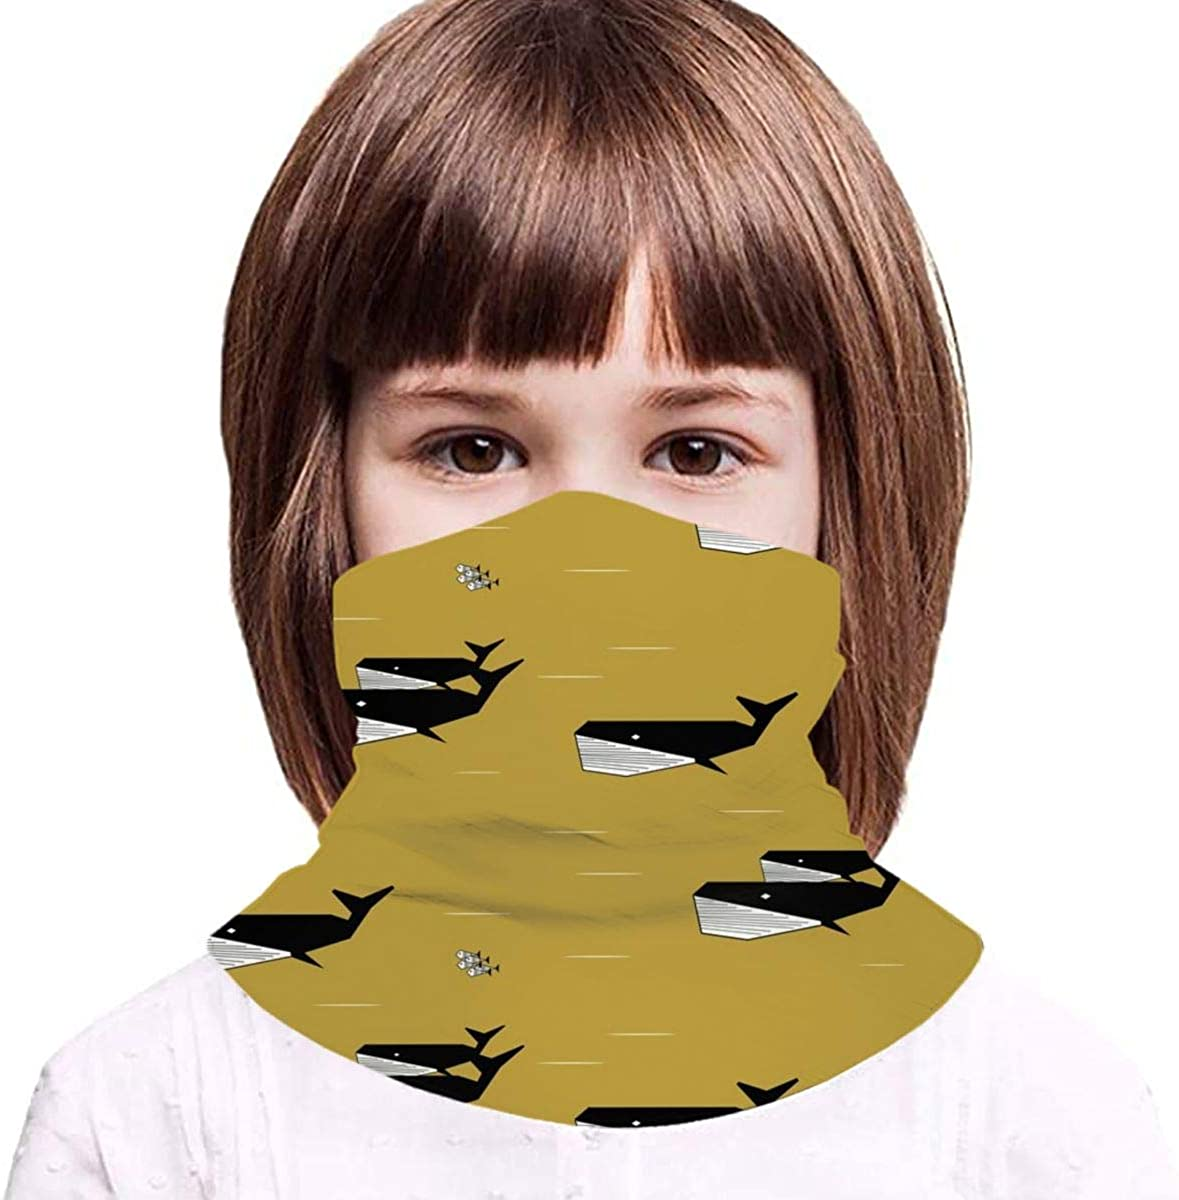 Geometric Whales Black And White On Mustard, Sea Animals Ocean Kids Face Mask Dust Sun UV Protection Neck Gaiter Balaclava Face Cover Scarf Summer Breathable for Cycling Fishing Outdoors